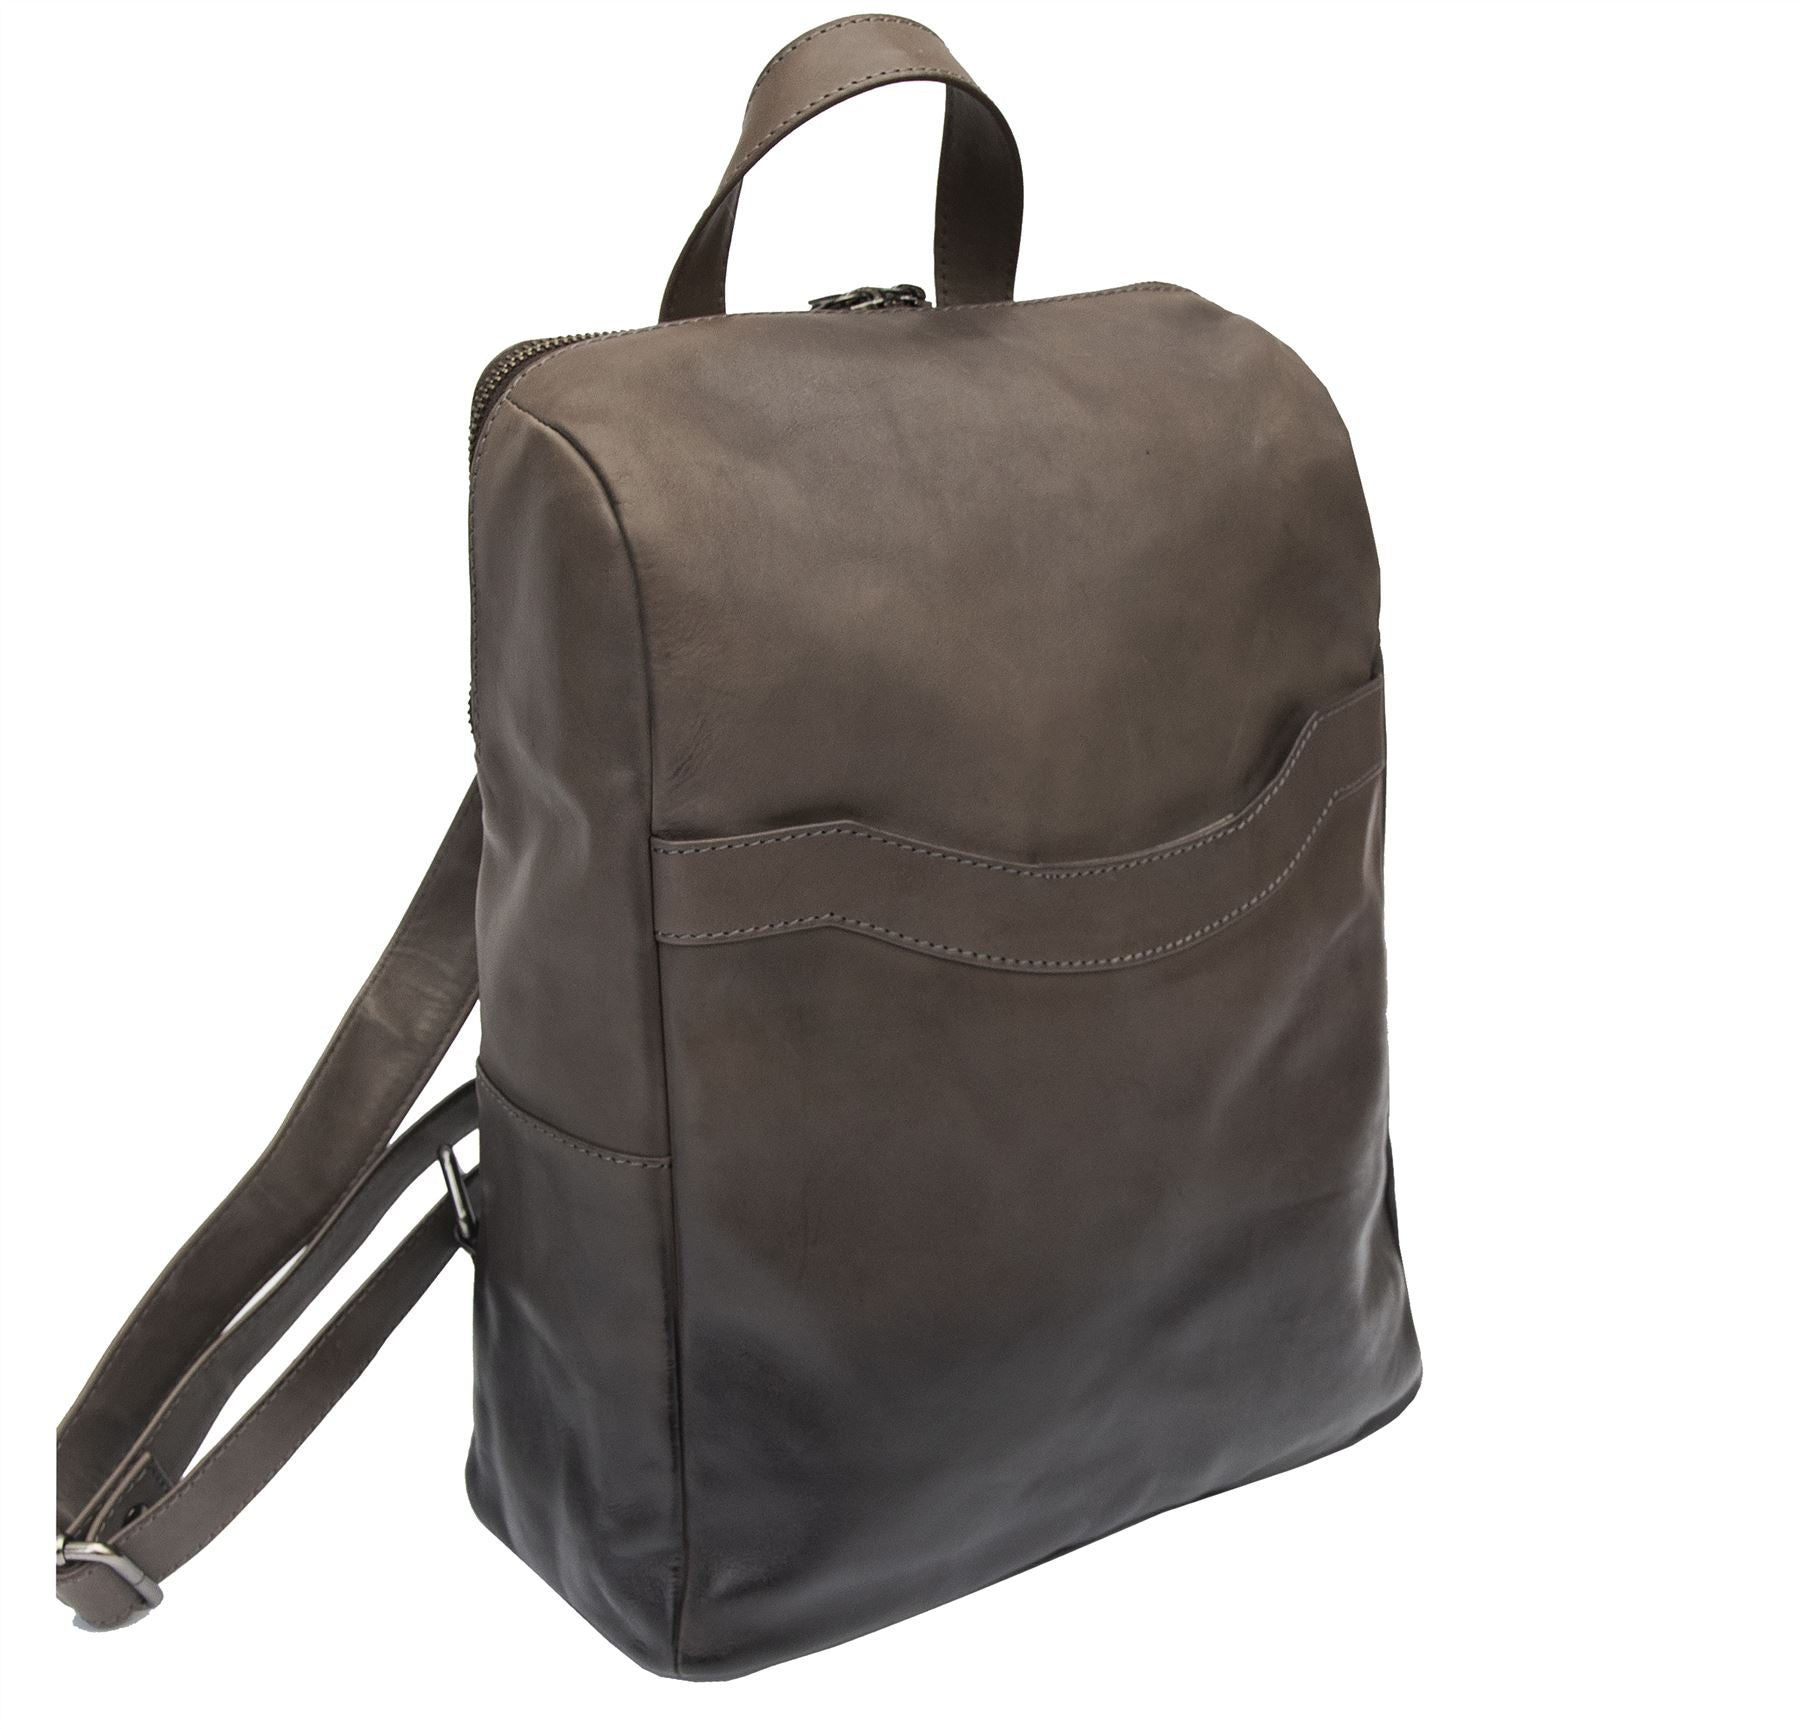 Cherokee Leather Rucksack / Backpack - 6363